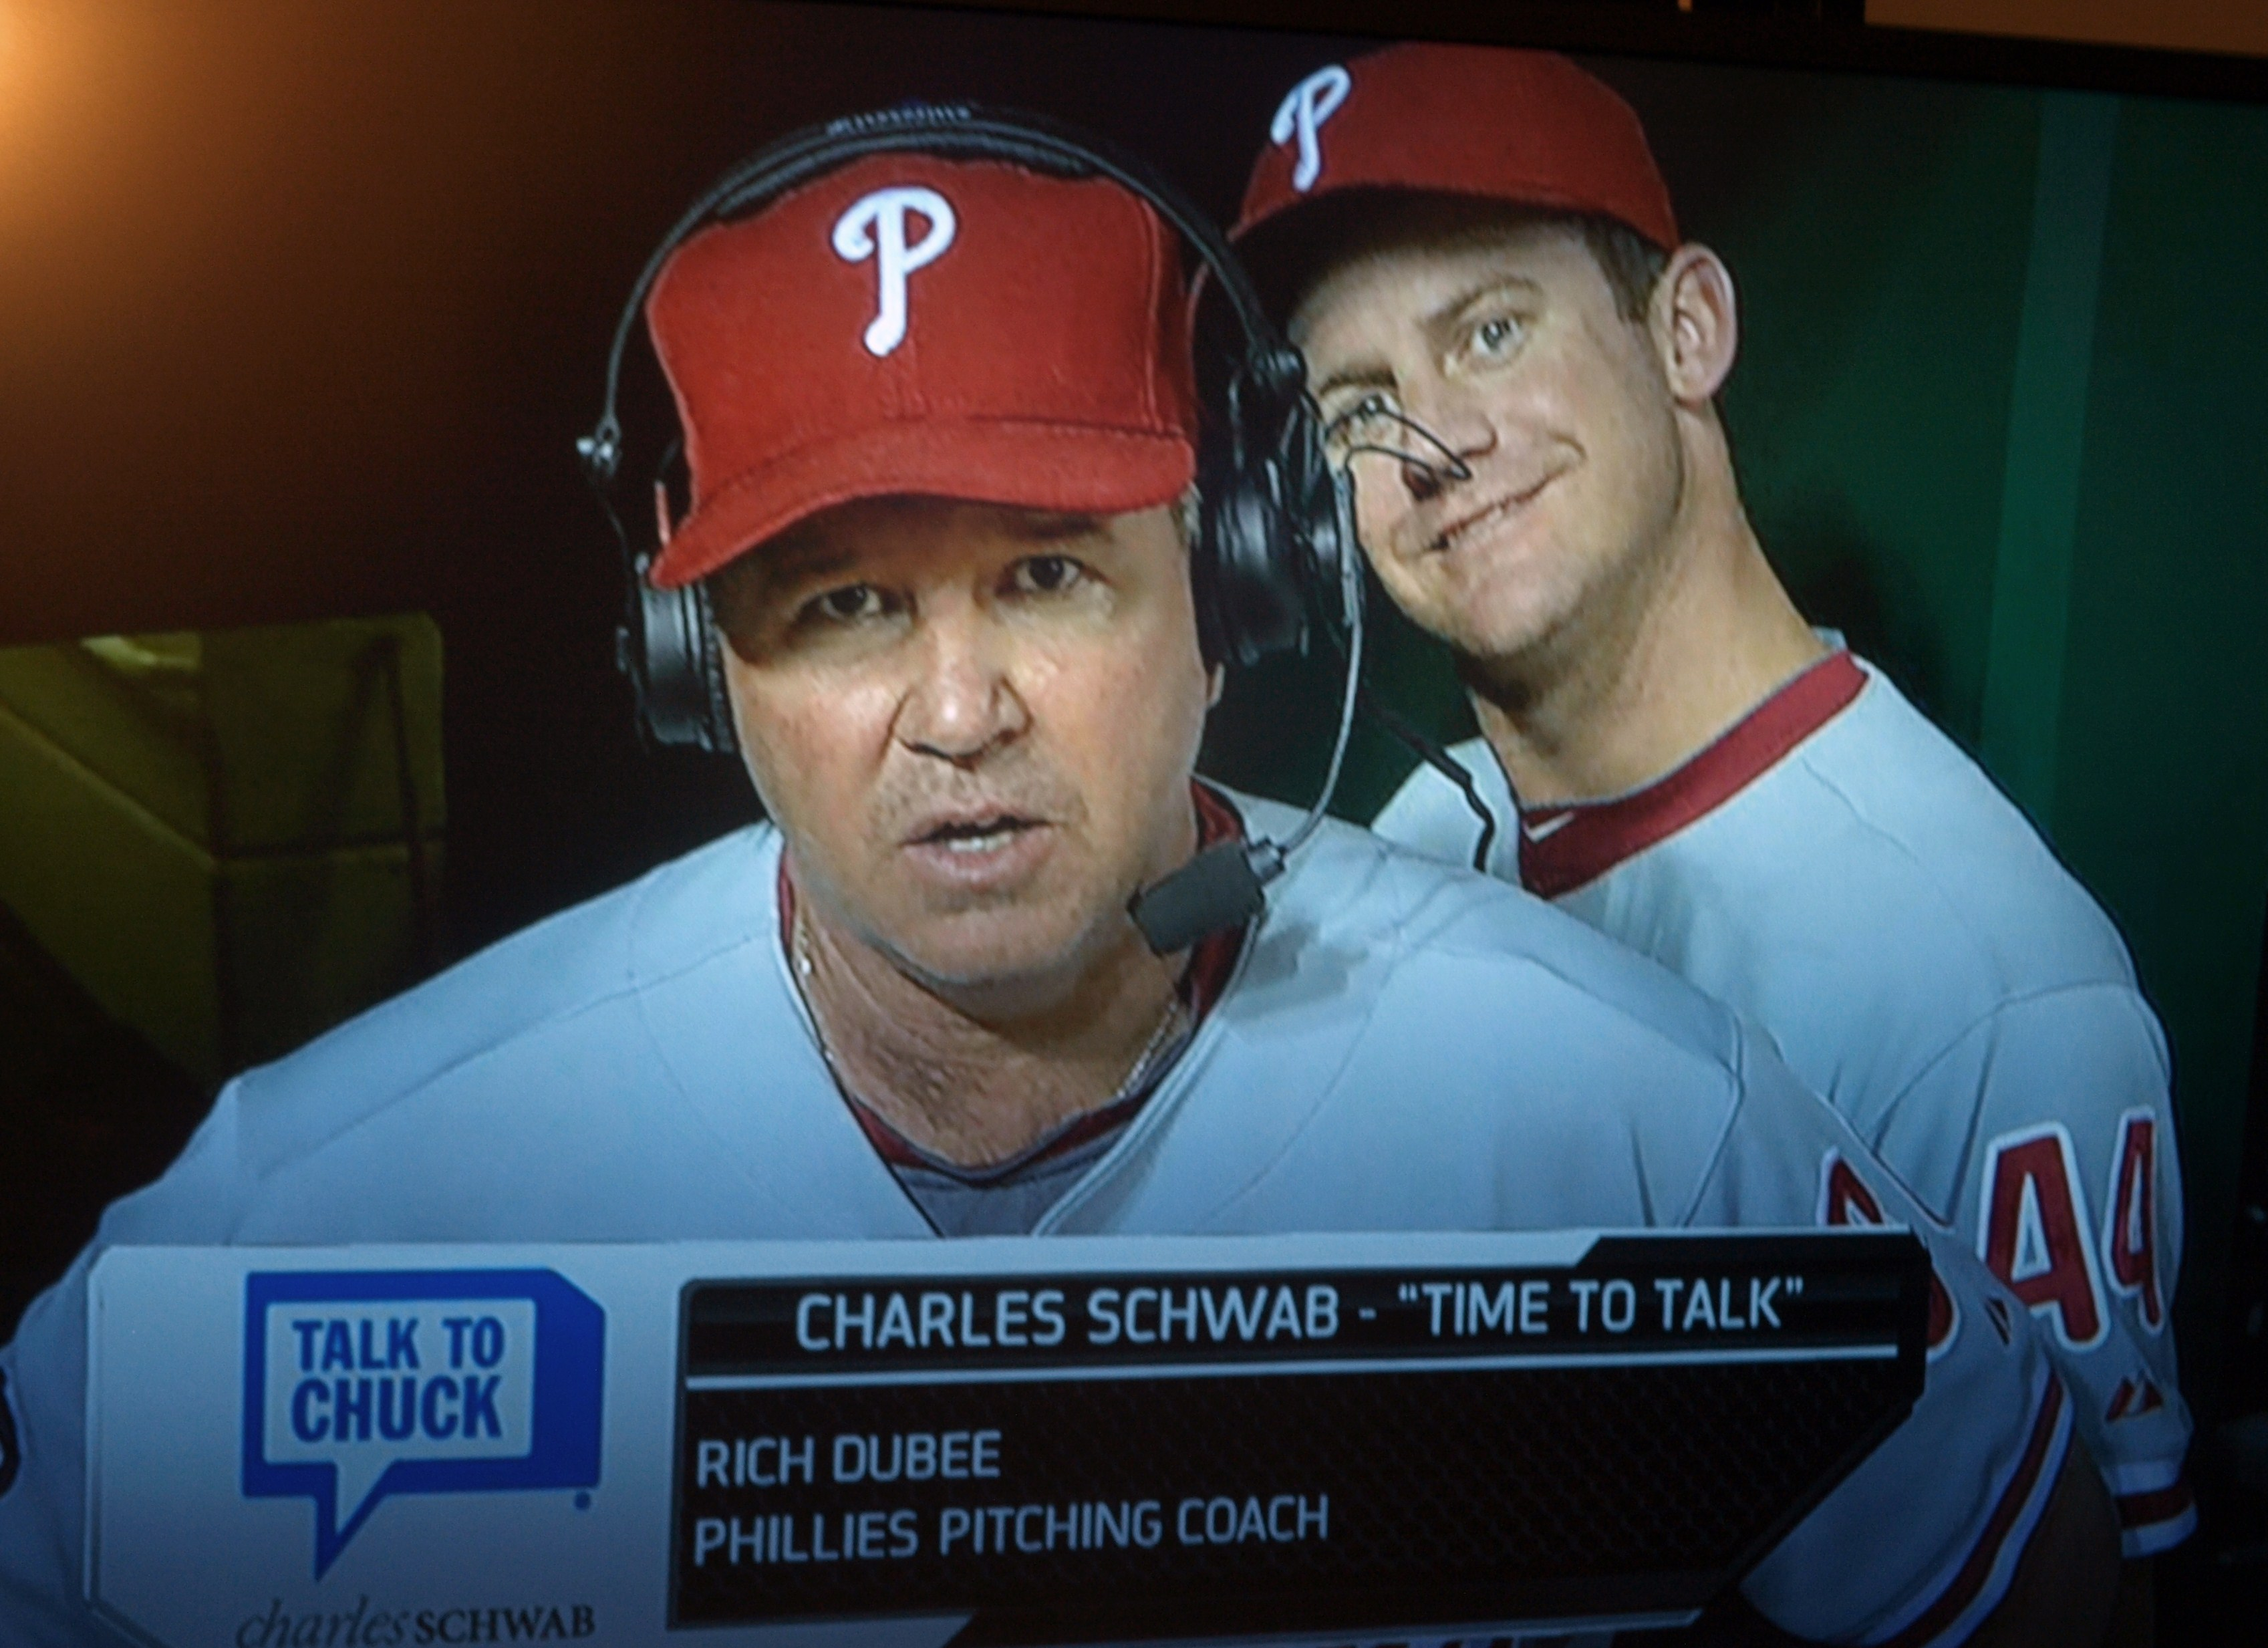 ... the camera's during an in-game interview with pitching coach Rich Dubee: